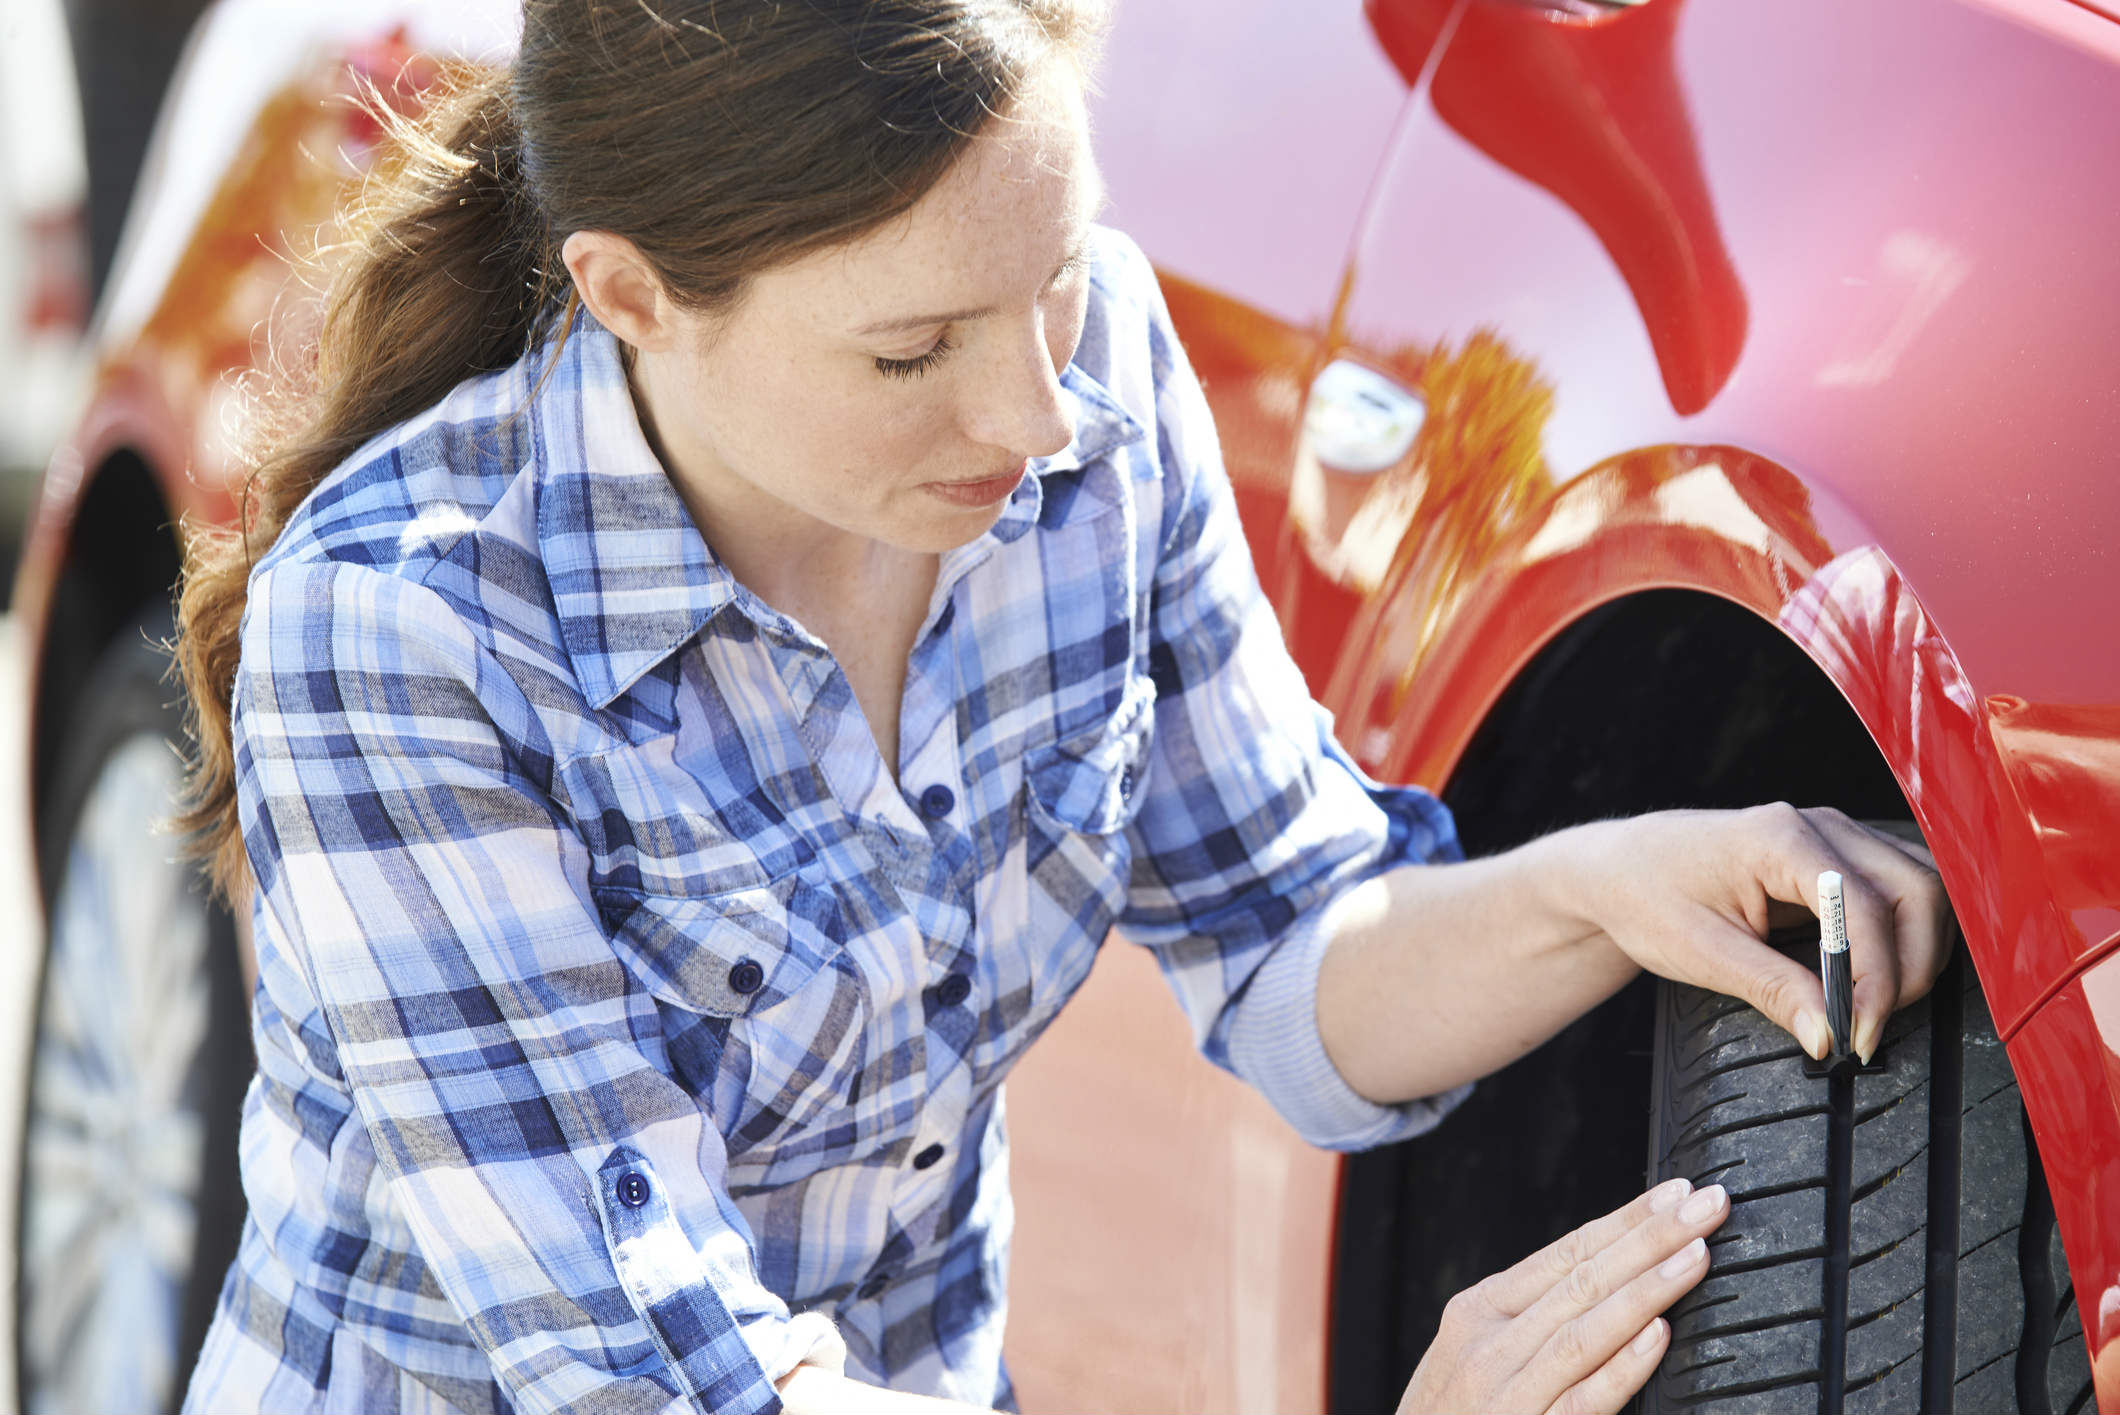 When checking tyres in the summer, what is the legal minimum tread depth?